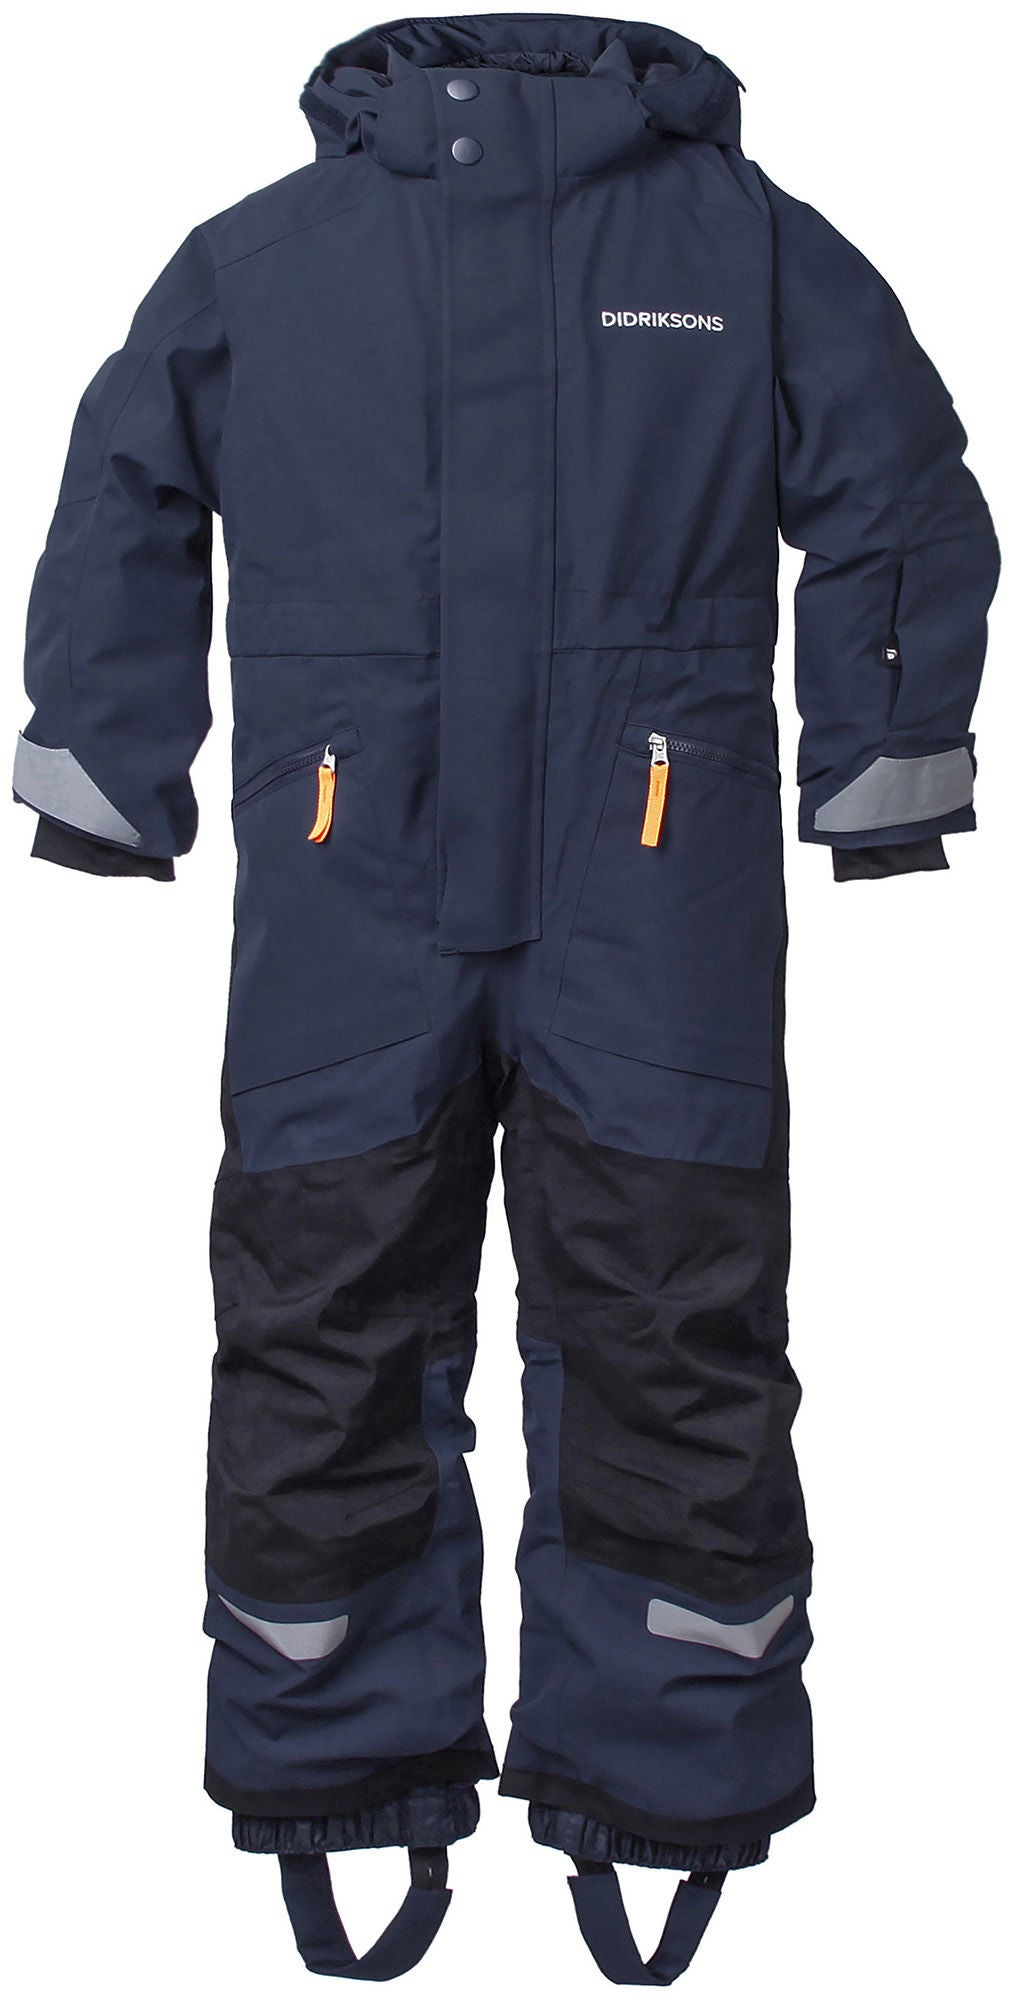 Didriksons Lynge Overall, Navy 80